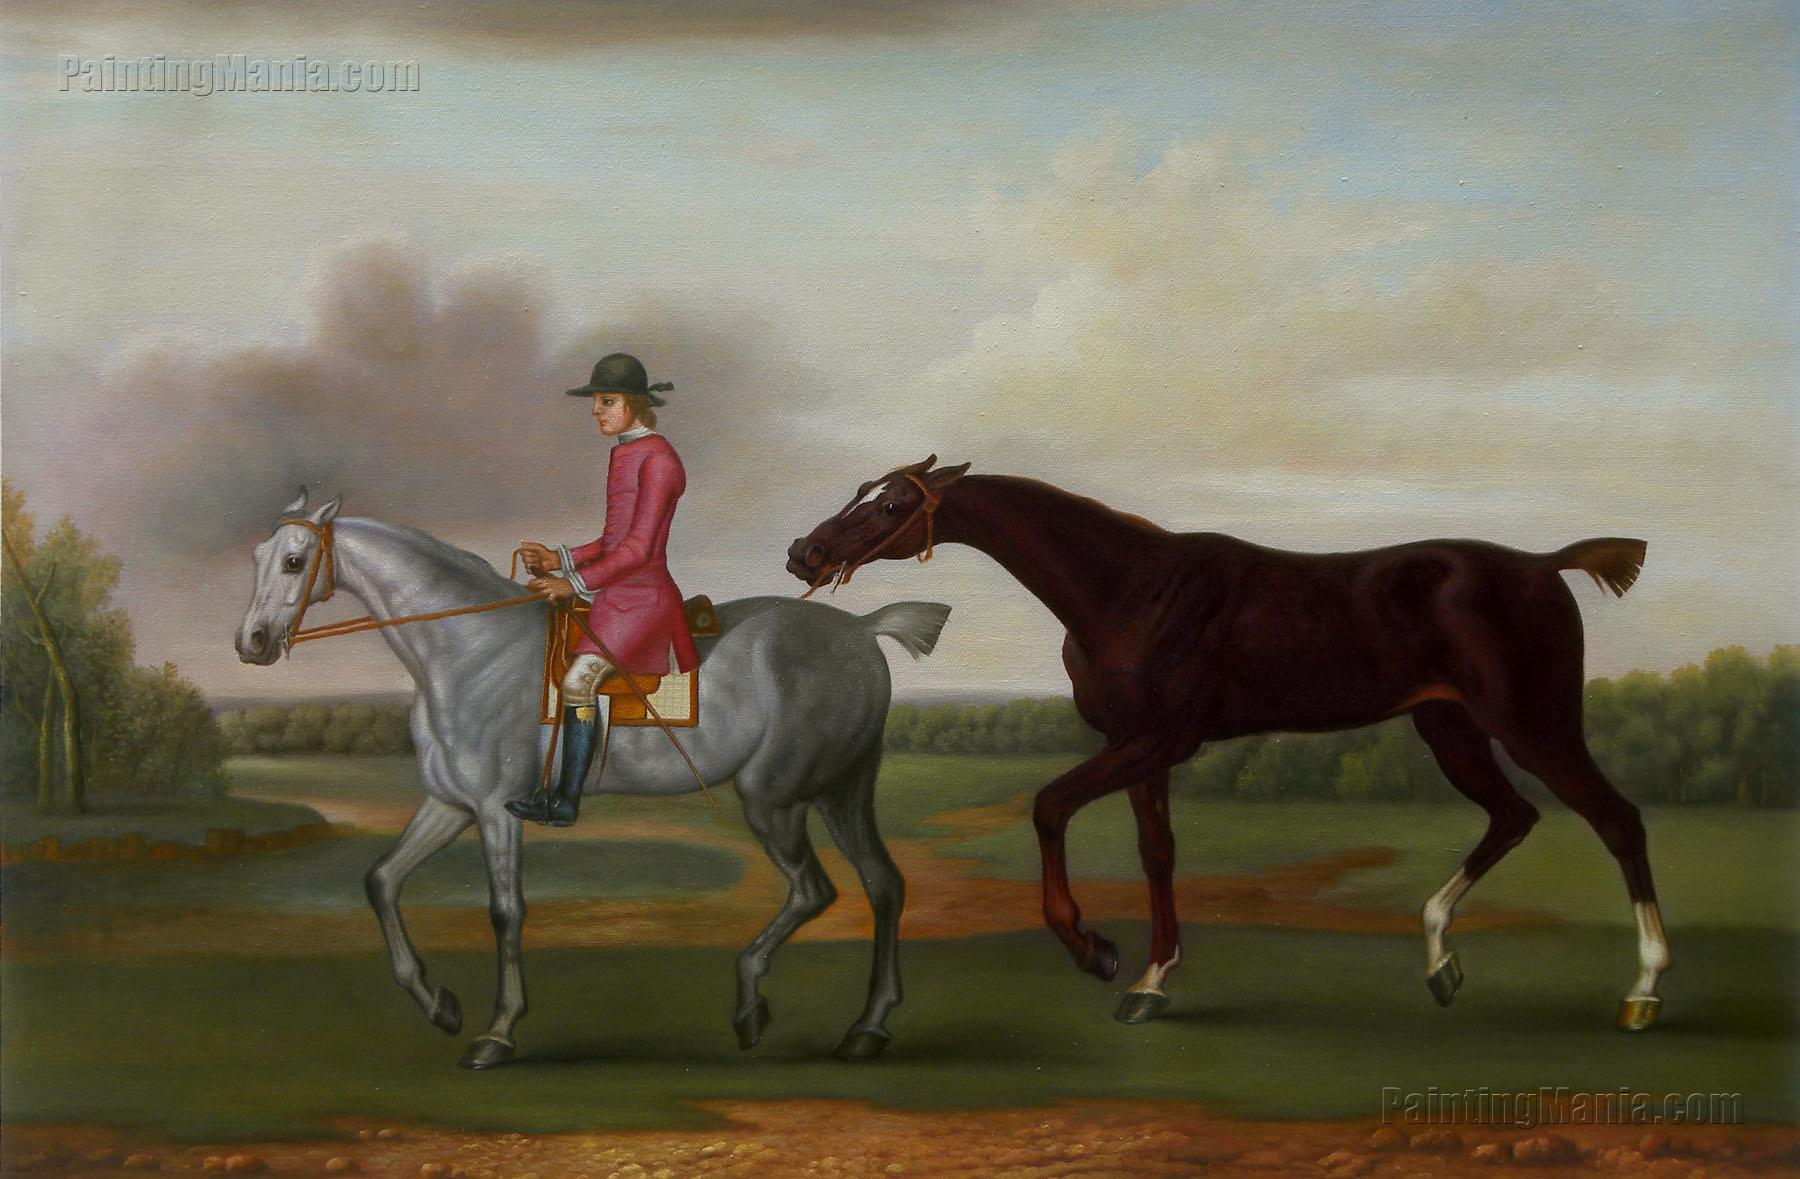 The Duke of Kingston's liver chestnut racehorse 'Jolly Roger'